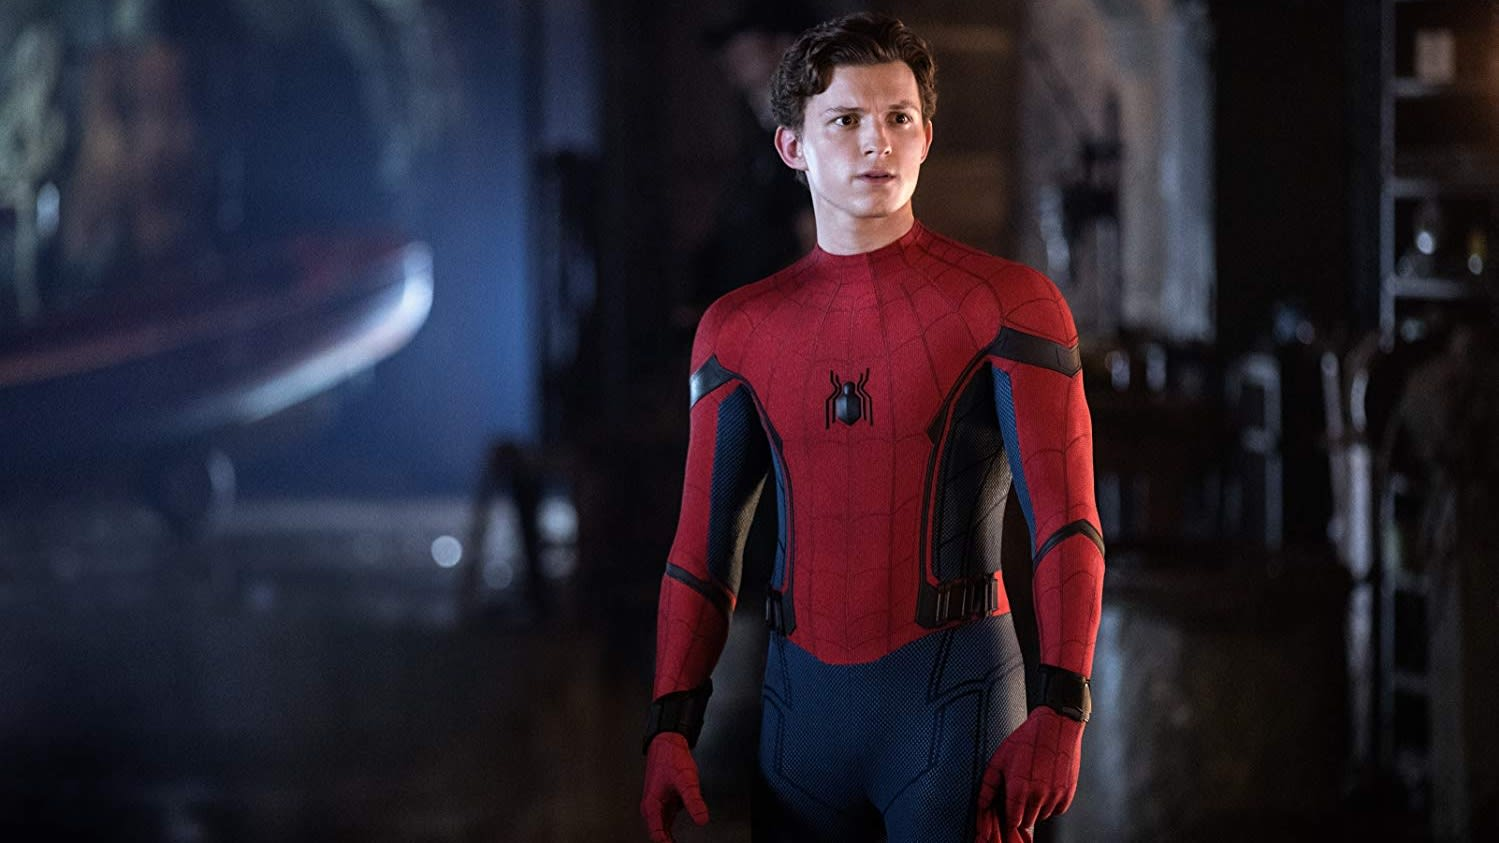 'For the moment the door is closed' on Spider-Man deal, Sony CEO says